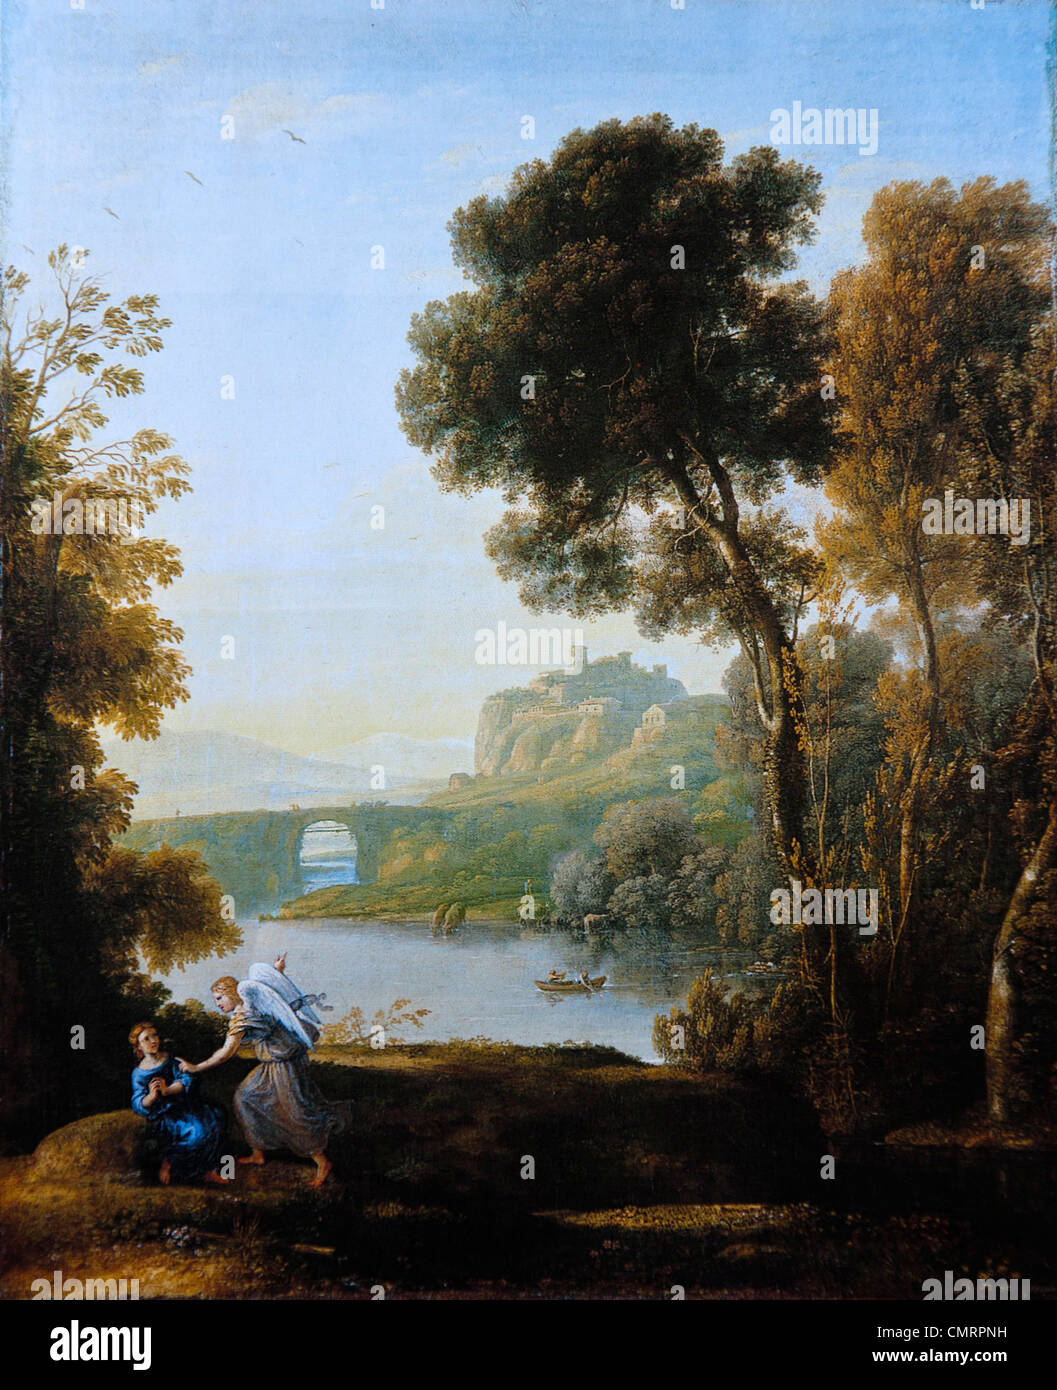 Claude Lorrain, Landscape with Hagar and the Angel, 1646 - Stock Image